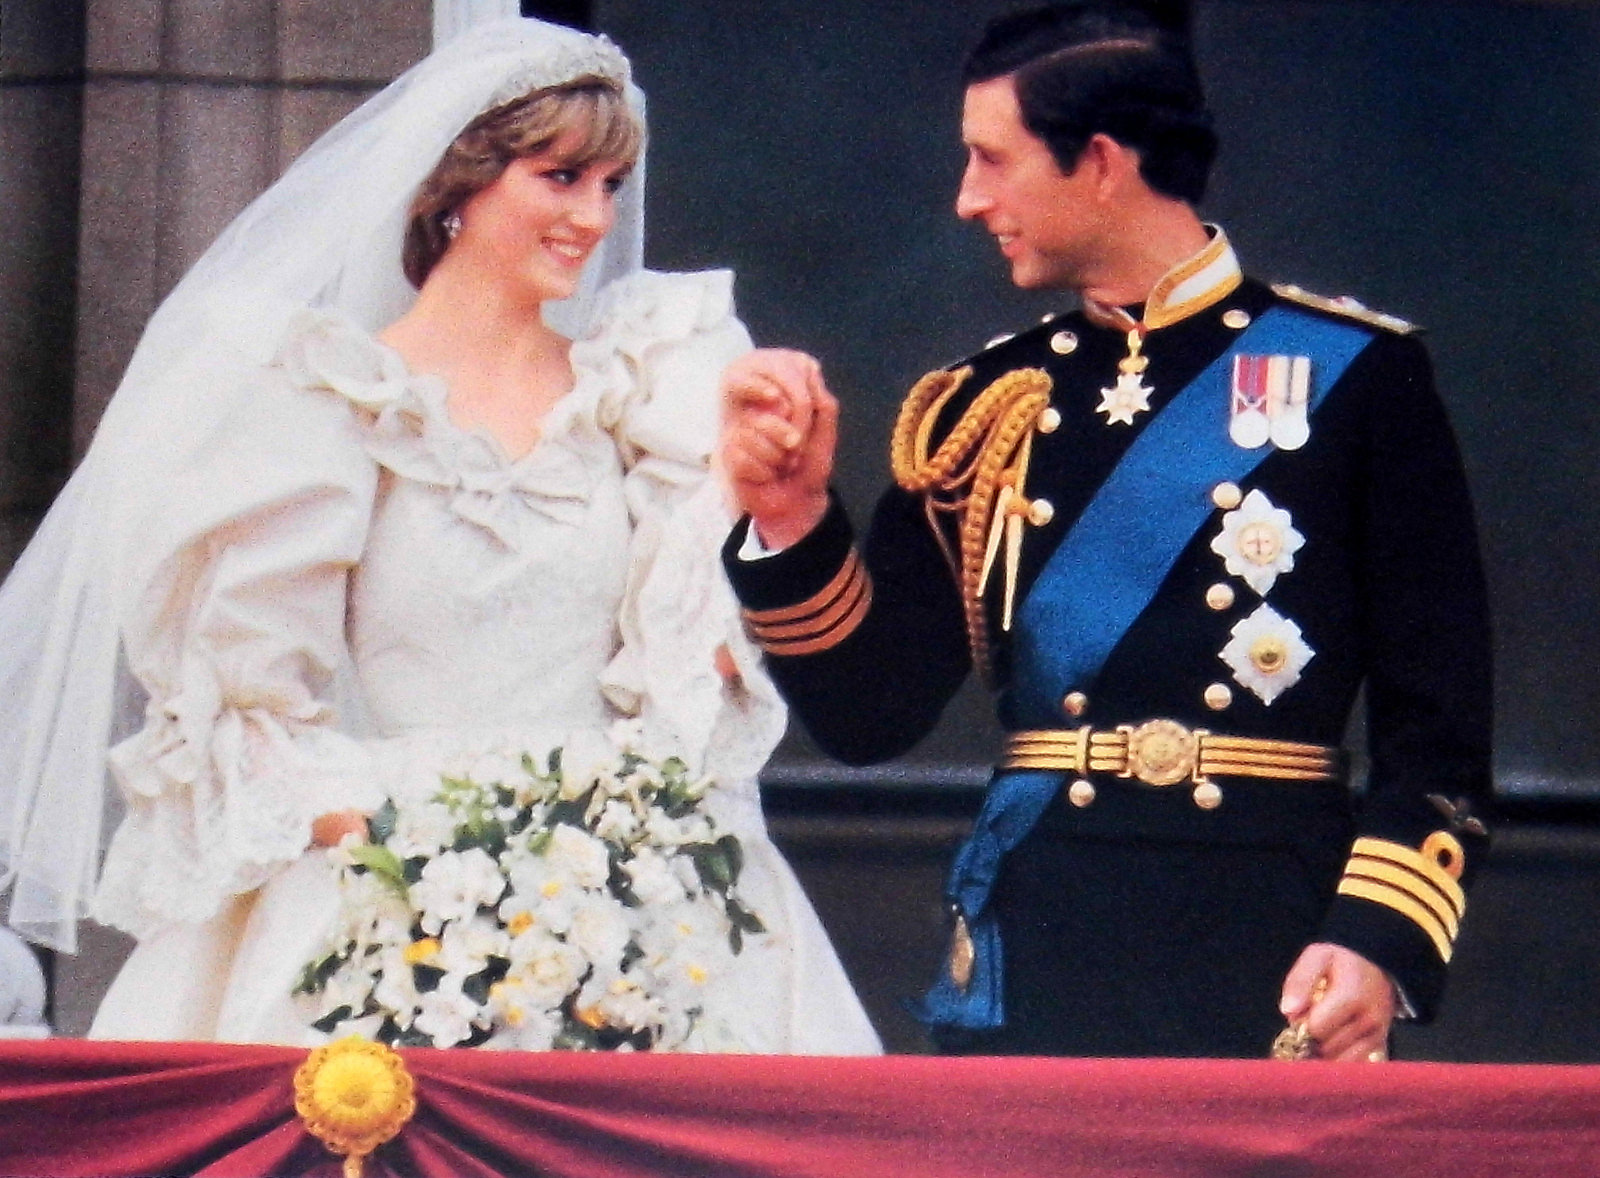 Five pieces of cake from different Royal Weddings to go on